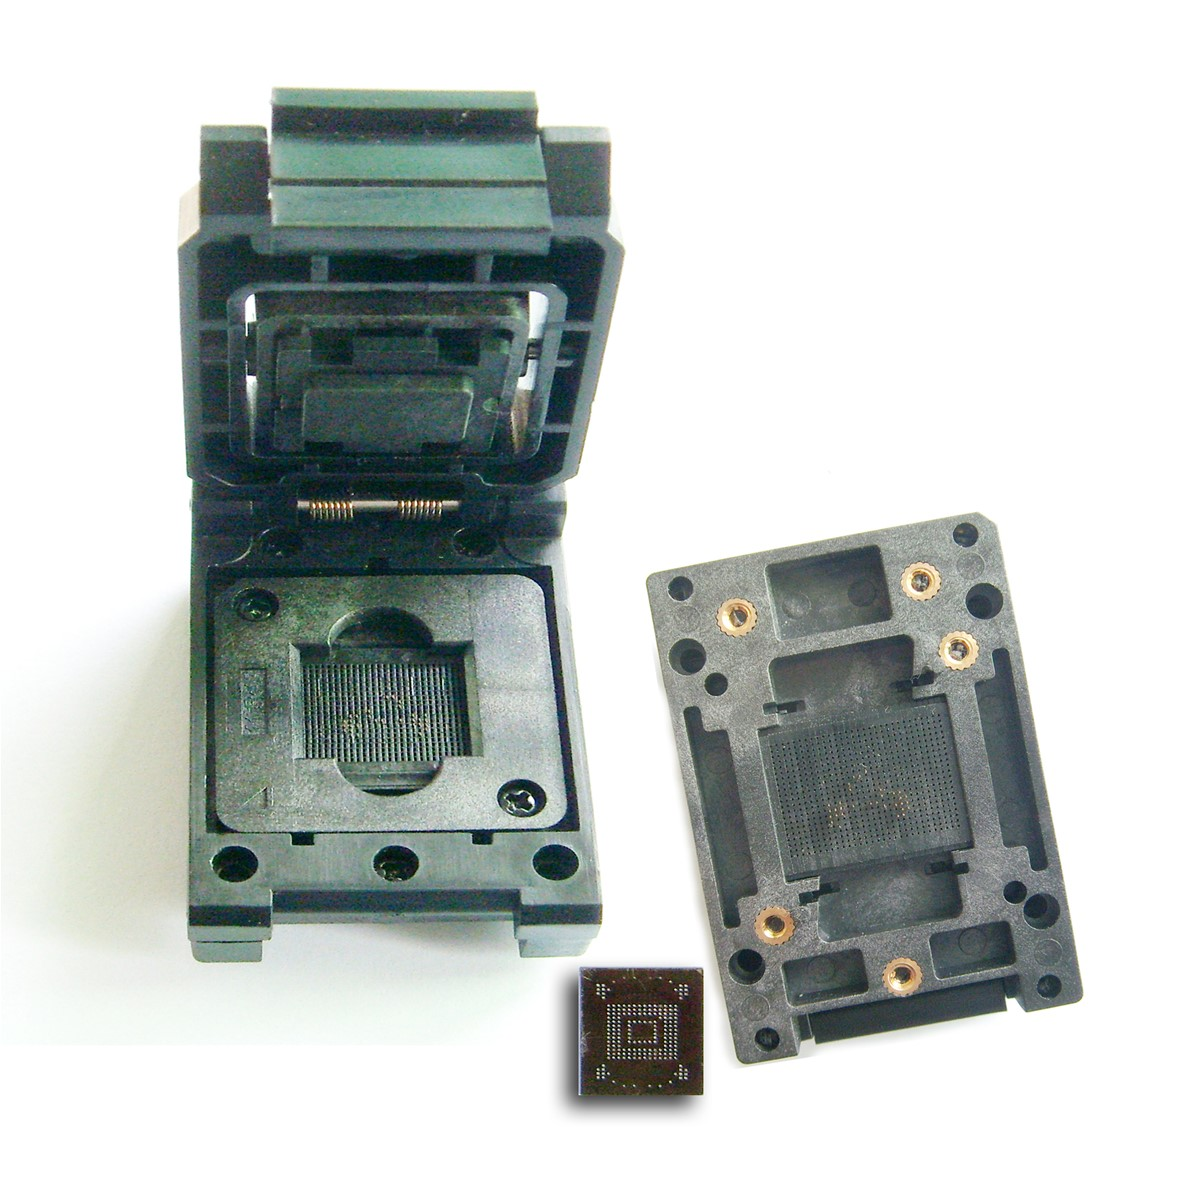 eMMC test socket, size11 5x13 Clamshell structure, for BGA153/169 testing  eMMC data reading